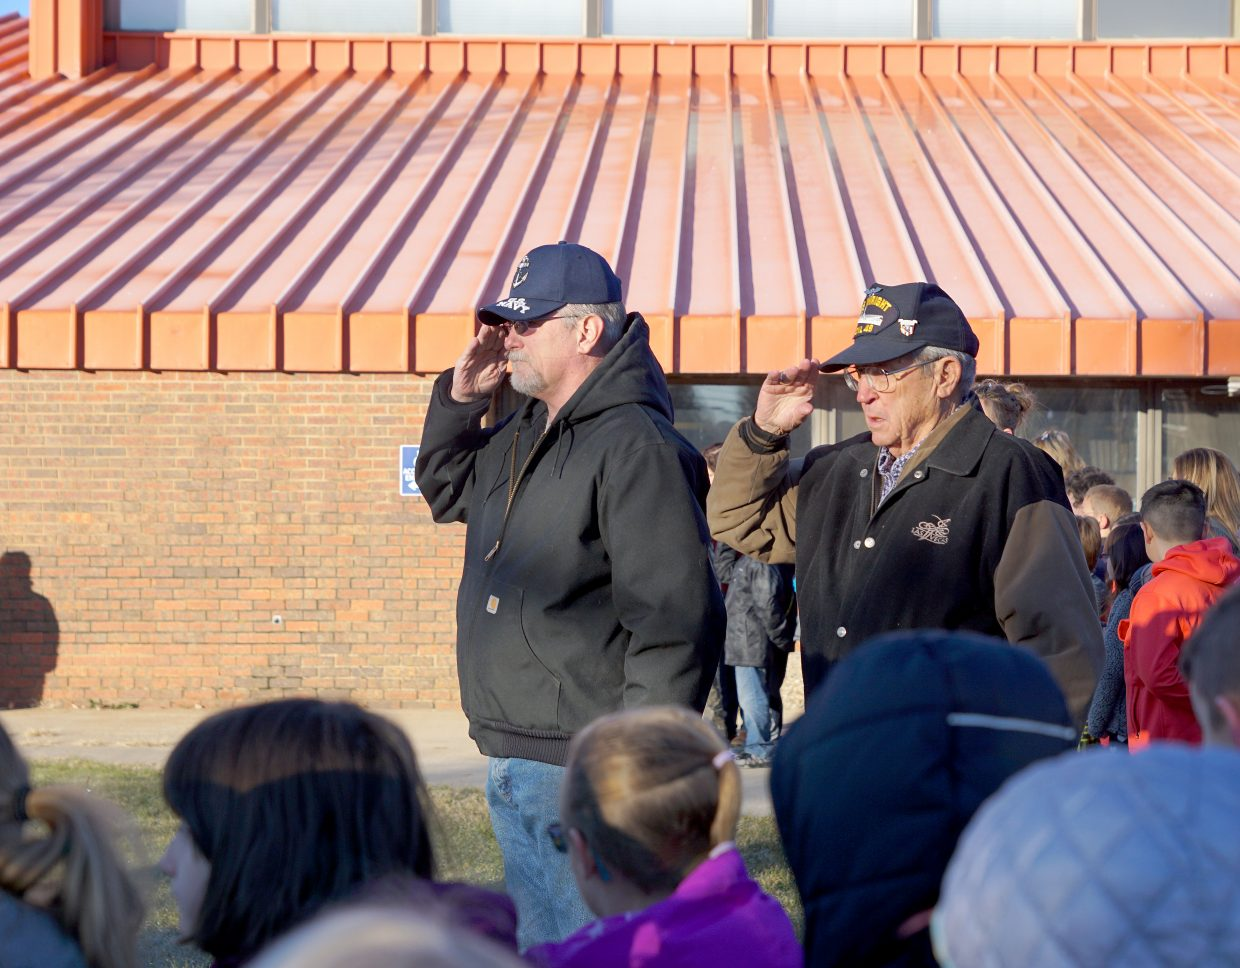 Veterans from most branches of military service were represented and saluted the flag.